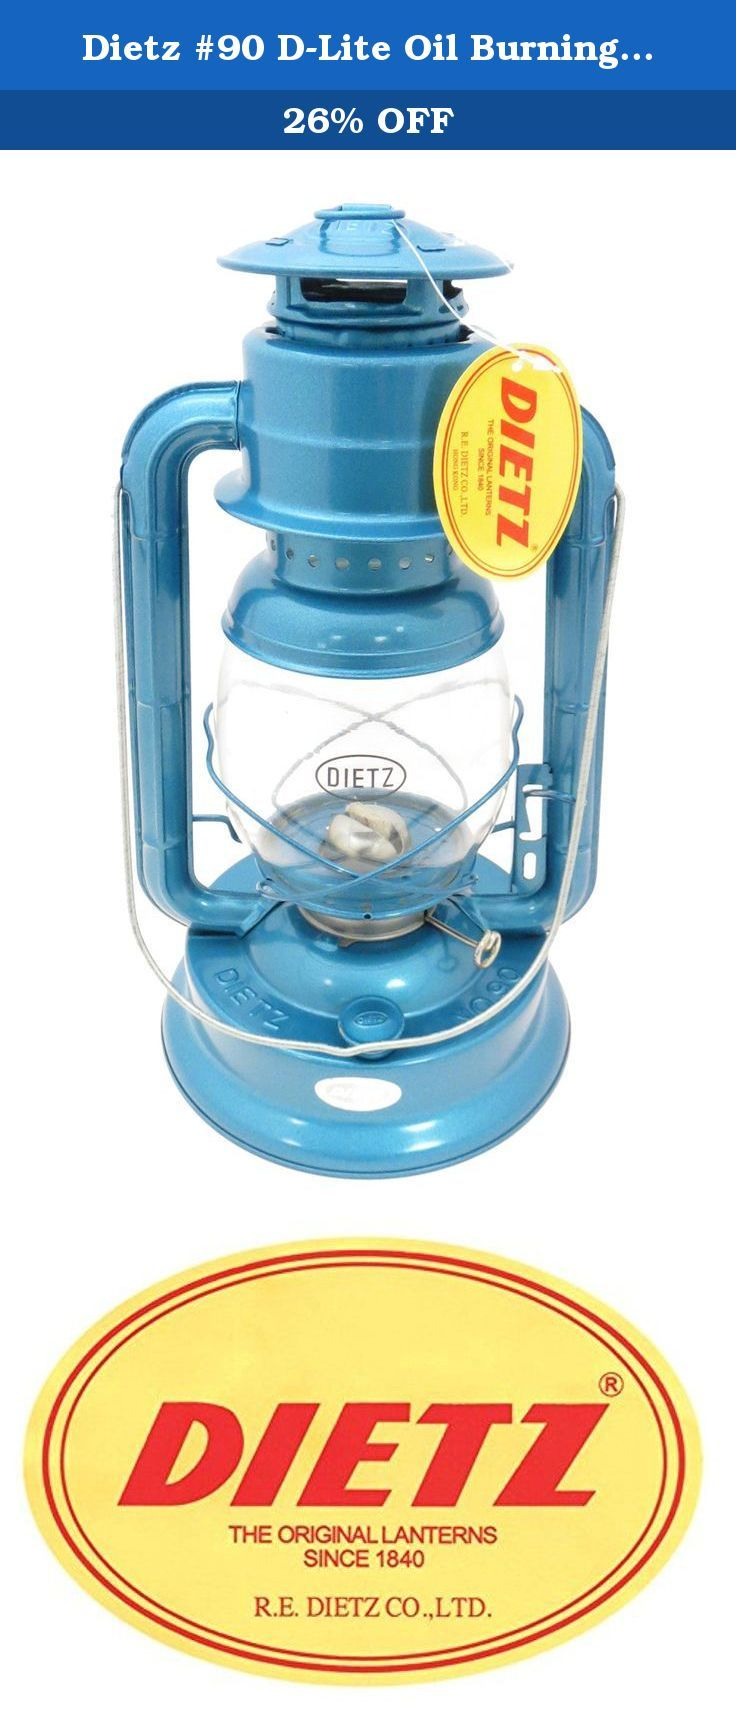 Dietz #90 D-Lite Oil Burning Lantern. The Dietz #90 D-Lite Lantern stands 13 inches tall, burns 26 hours on 31 ounces of fuel, has a 12 candlepower output, and comes with a 7/8 inch wick. Great for emergencies, camping, or as a casual decoration.